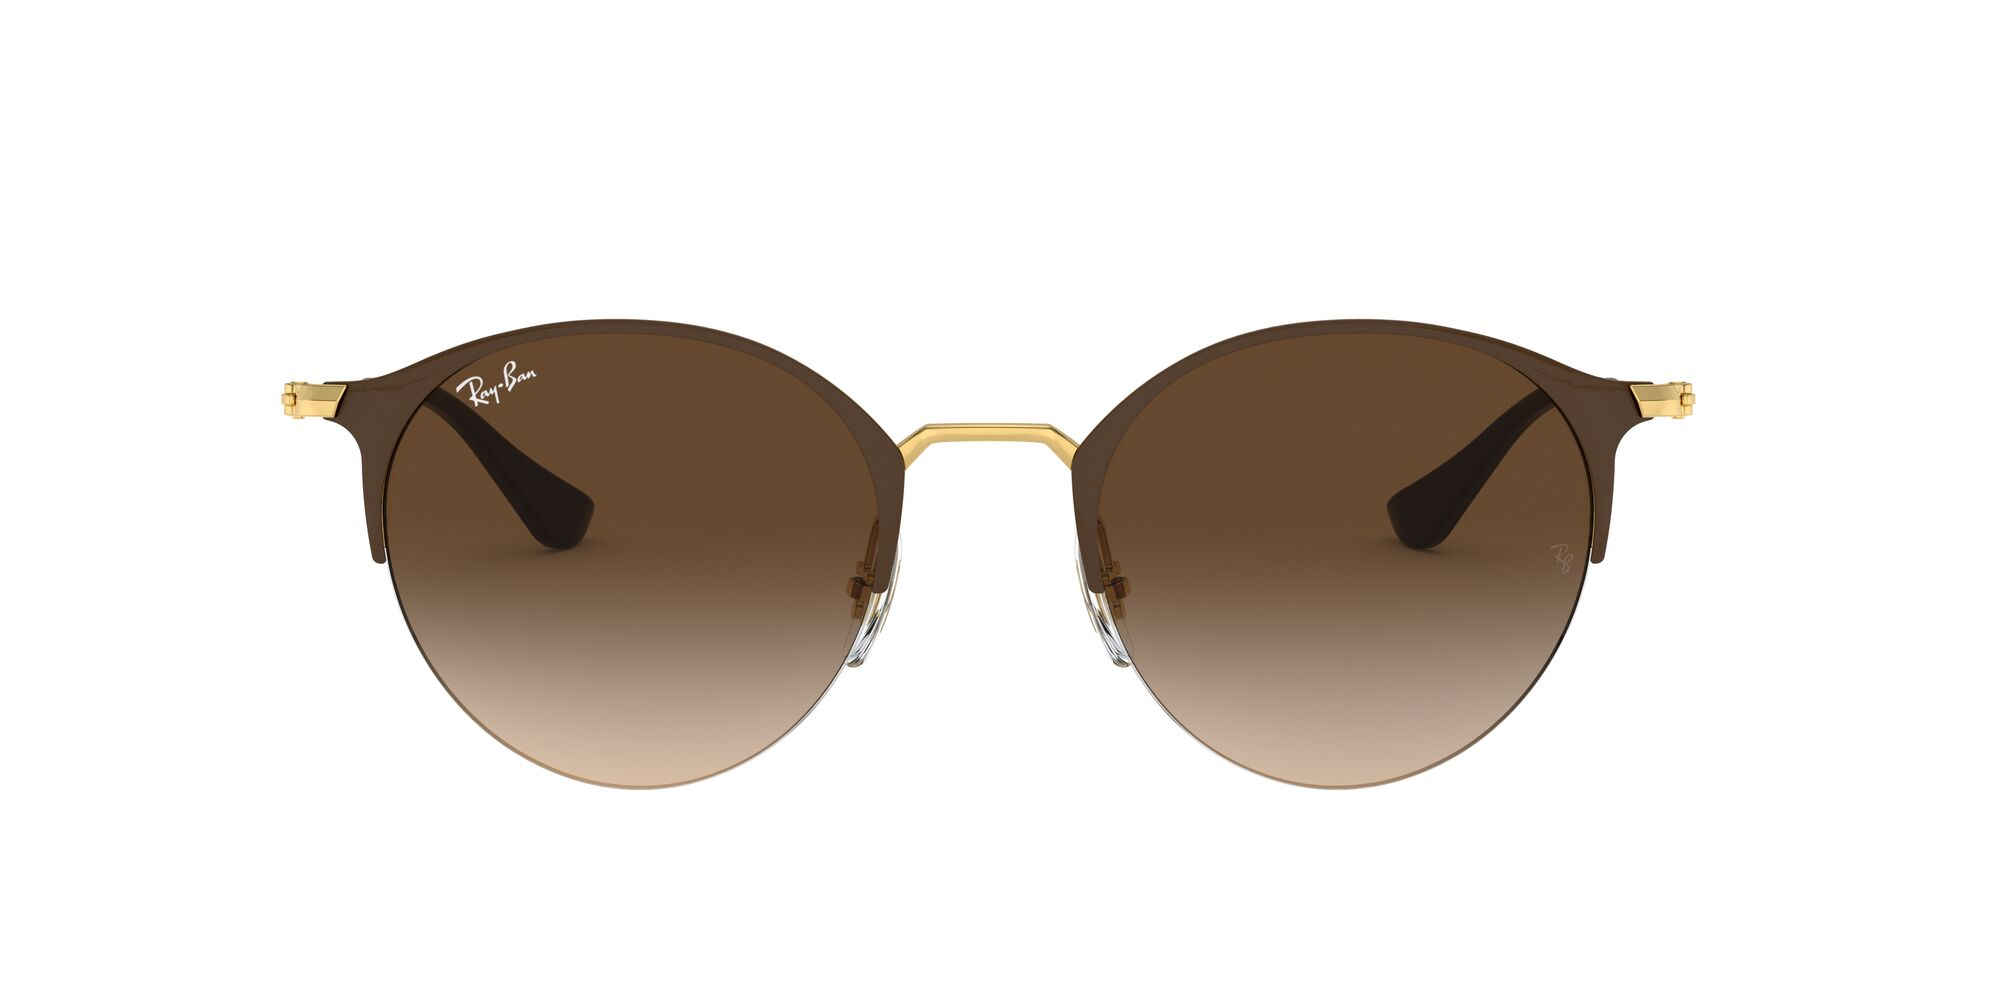 Front Ray-Ban Ray-Ban 0RB3578 900913 51/22 Zilver, Bruin/Bruin